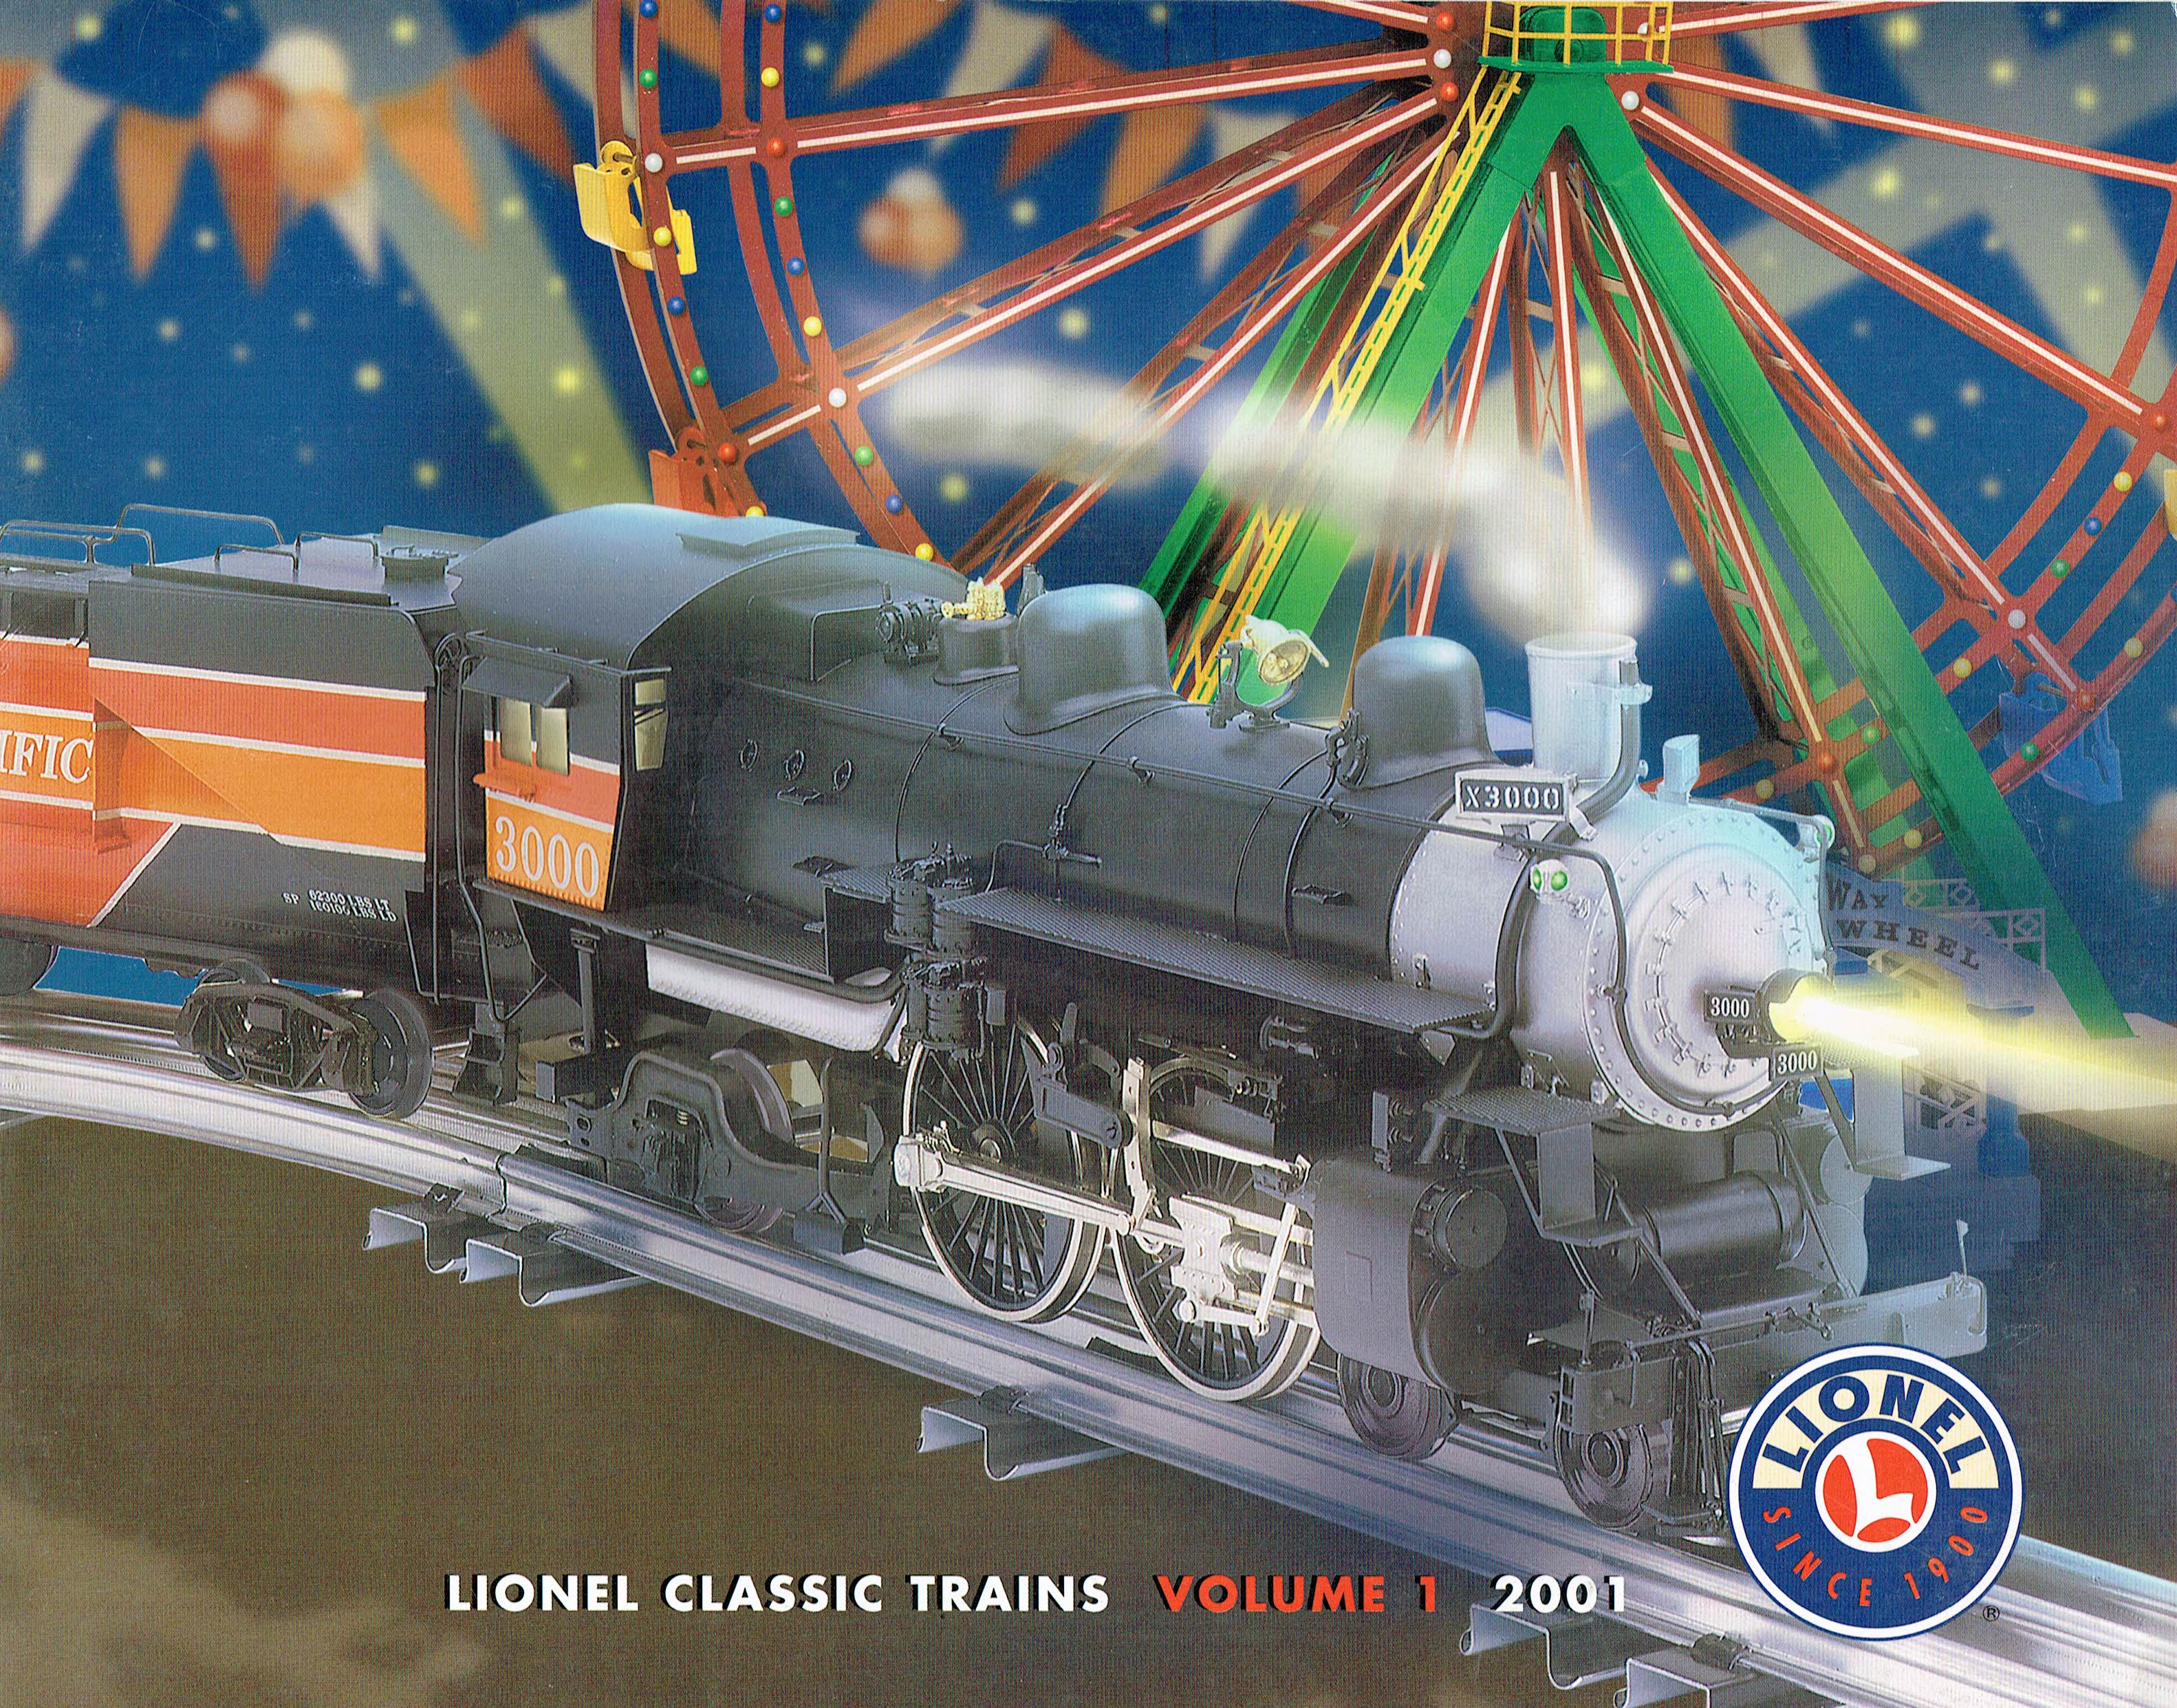 Lionel 2001 Classic Trains Volume 1 Catalog image